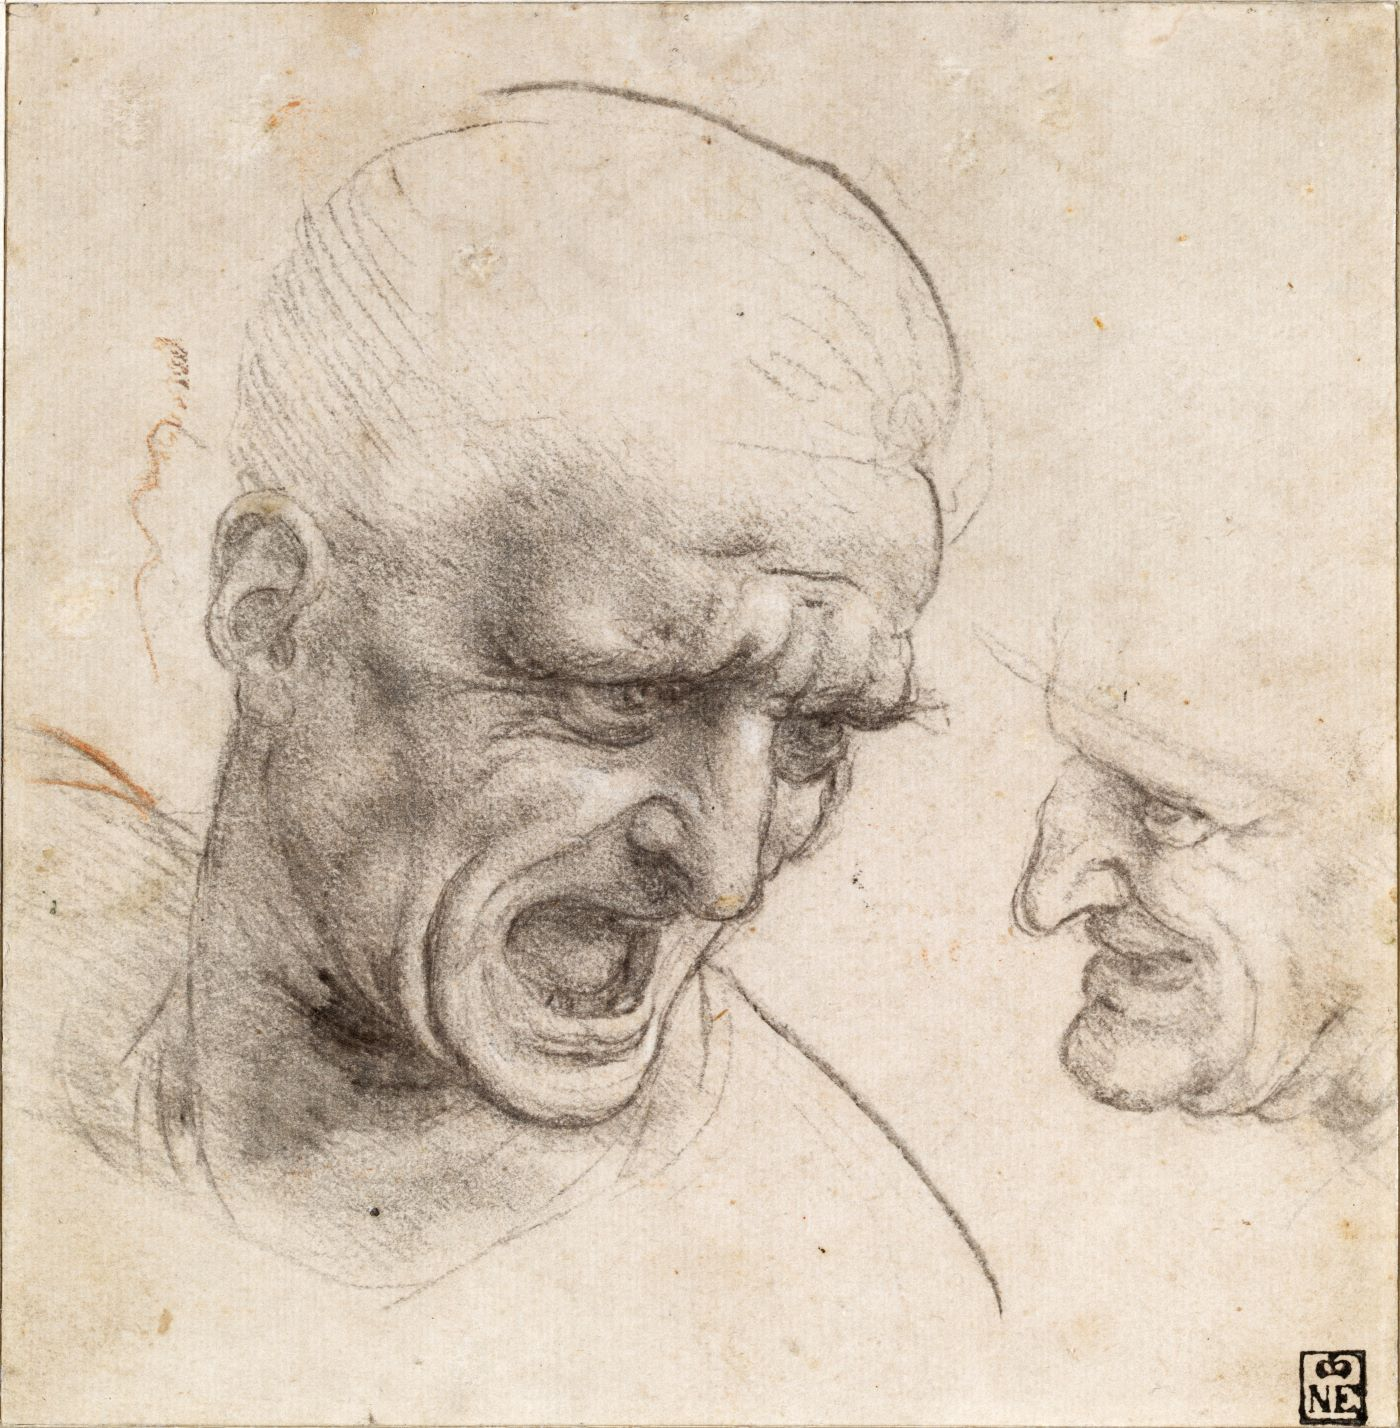 Leonardo da Vinci (1452-1519) Studies of the Heads of Two Warriors, c. 1504-05 Black chalk or charcoal, traces of red chalk Szépművészeti Múzeum, Budapest